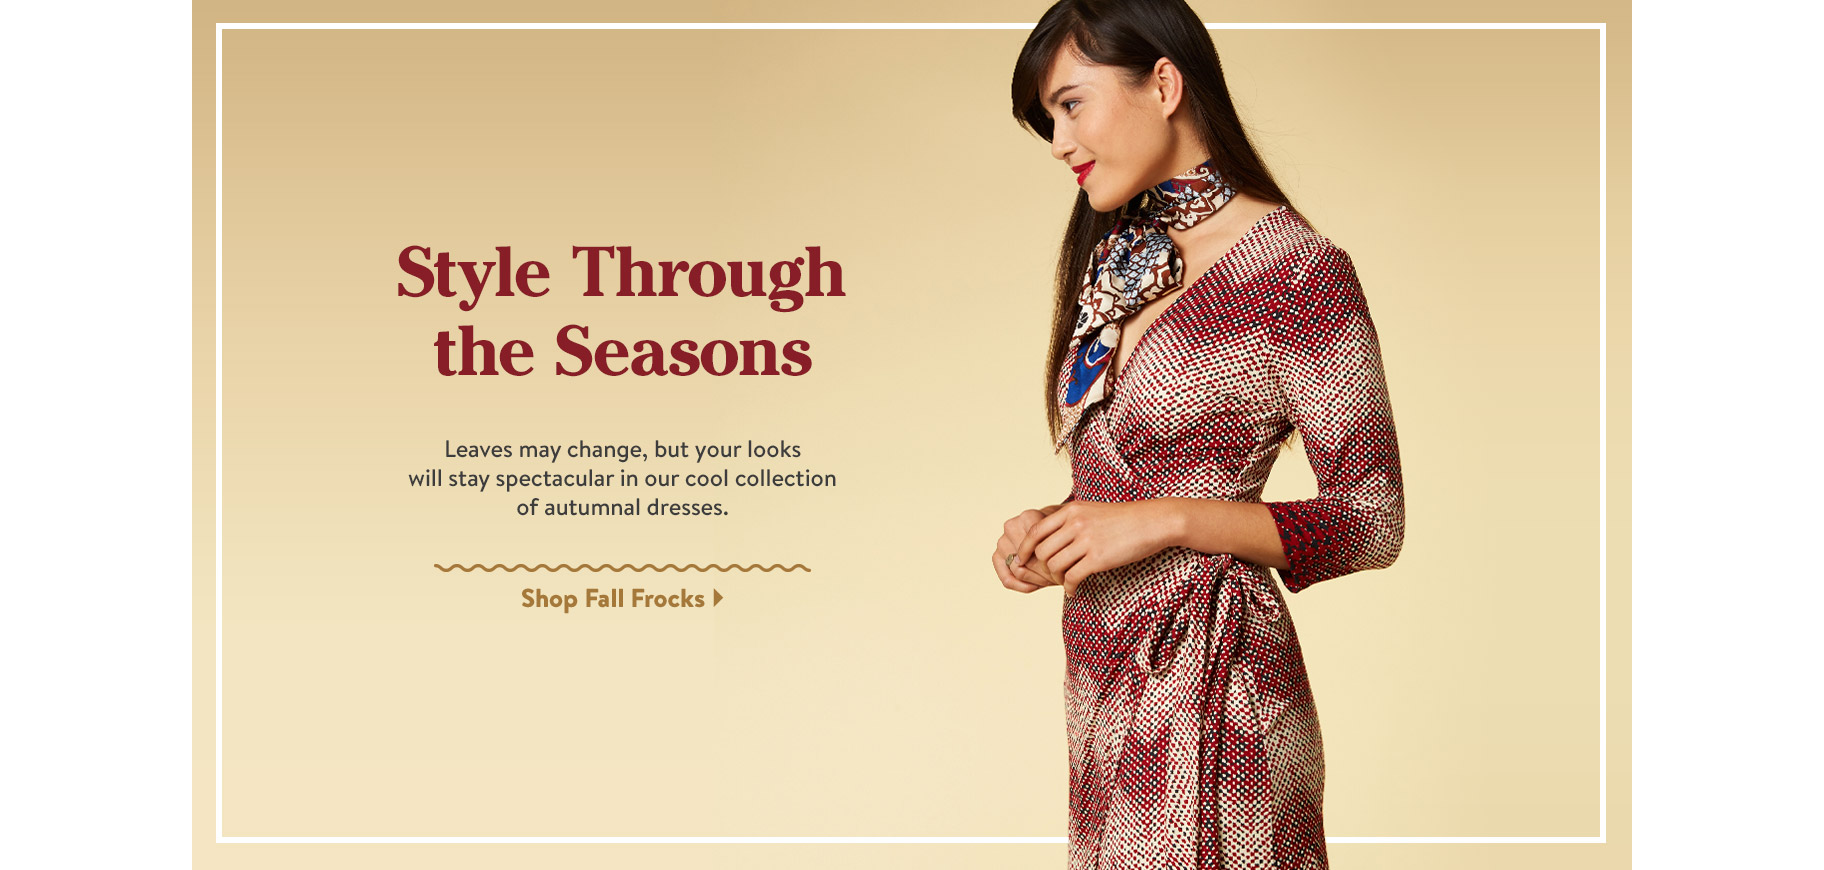 Style Through the Seasons. Leaves may change, but your looks will stay spectacular in our cool collection of autumnal dresses. Shop Fall Frocks.